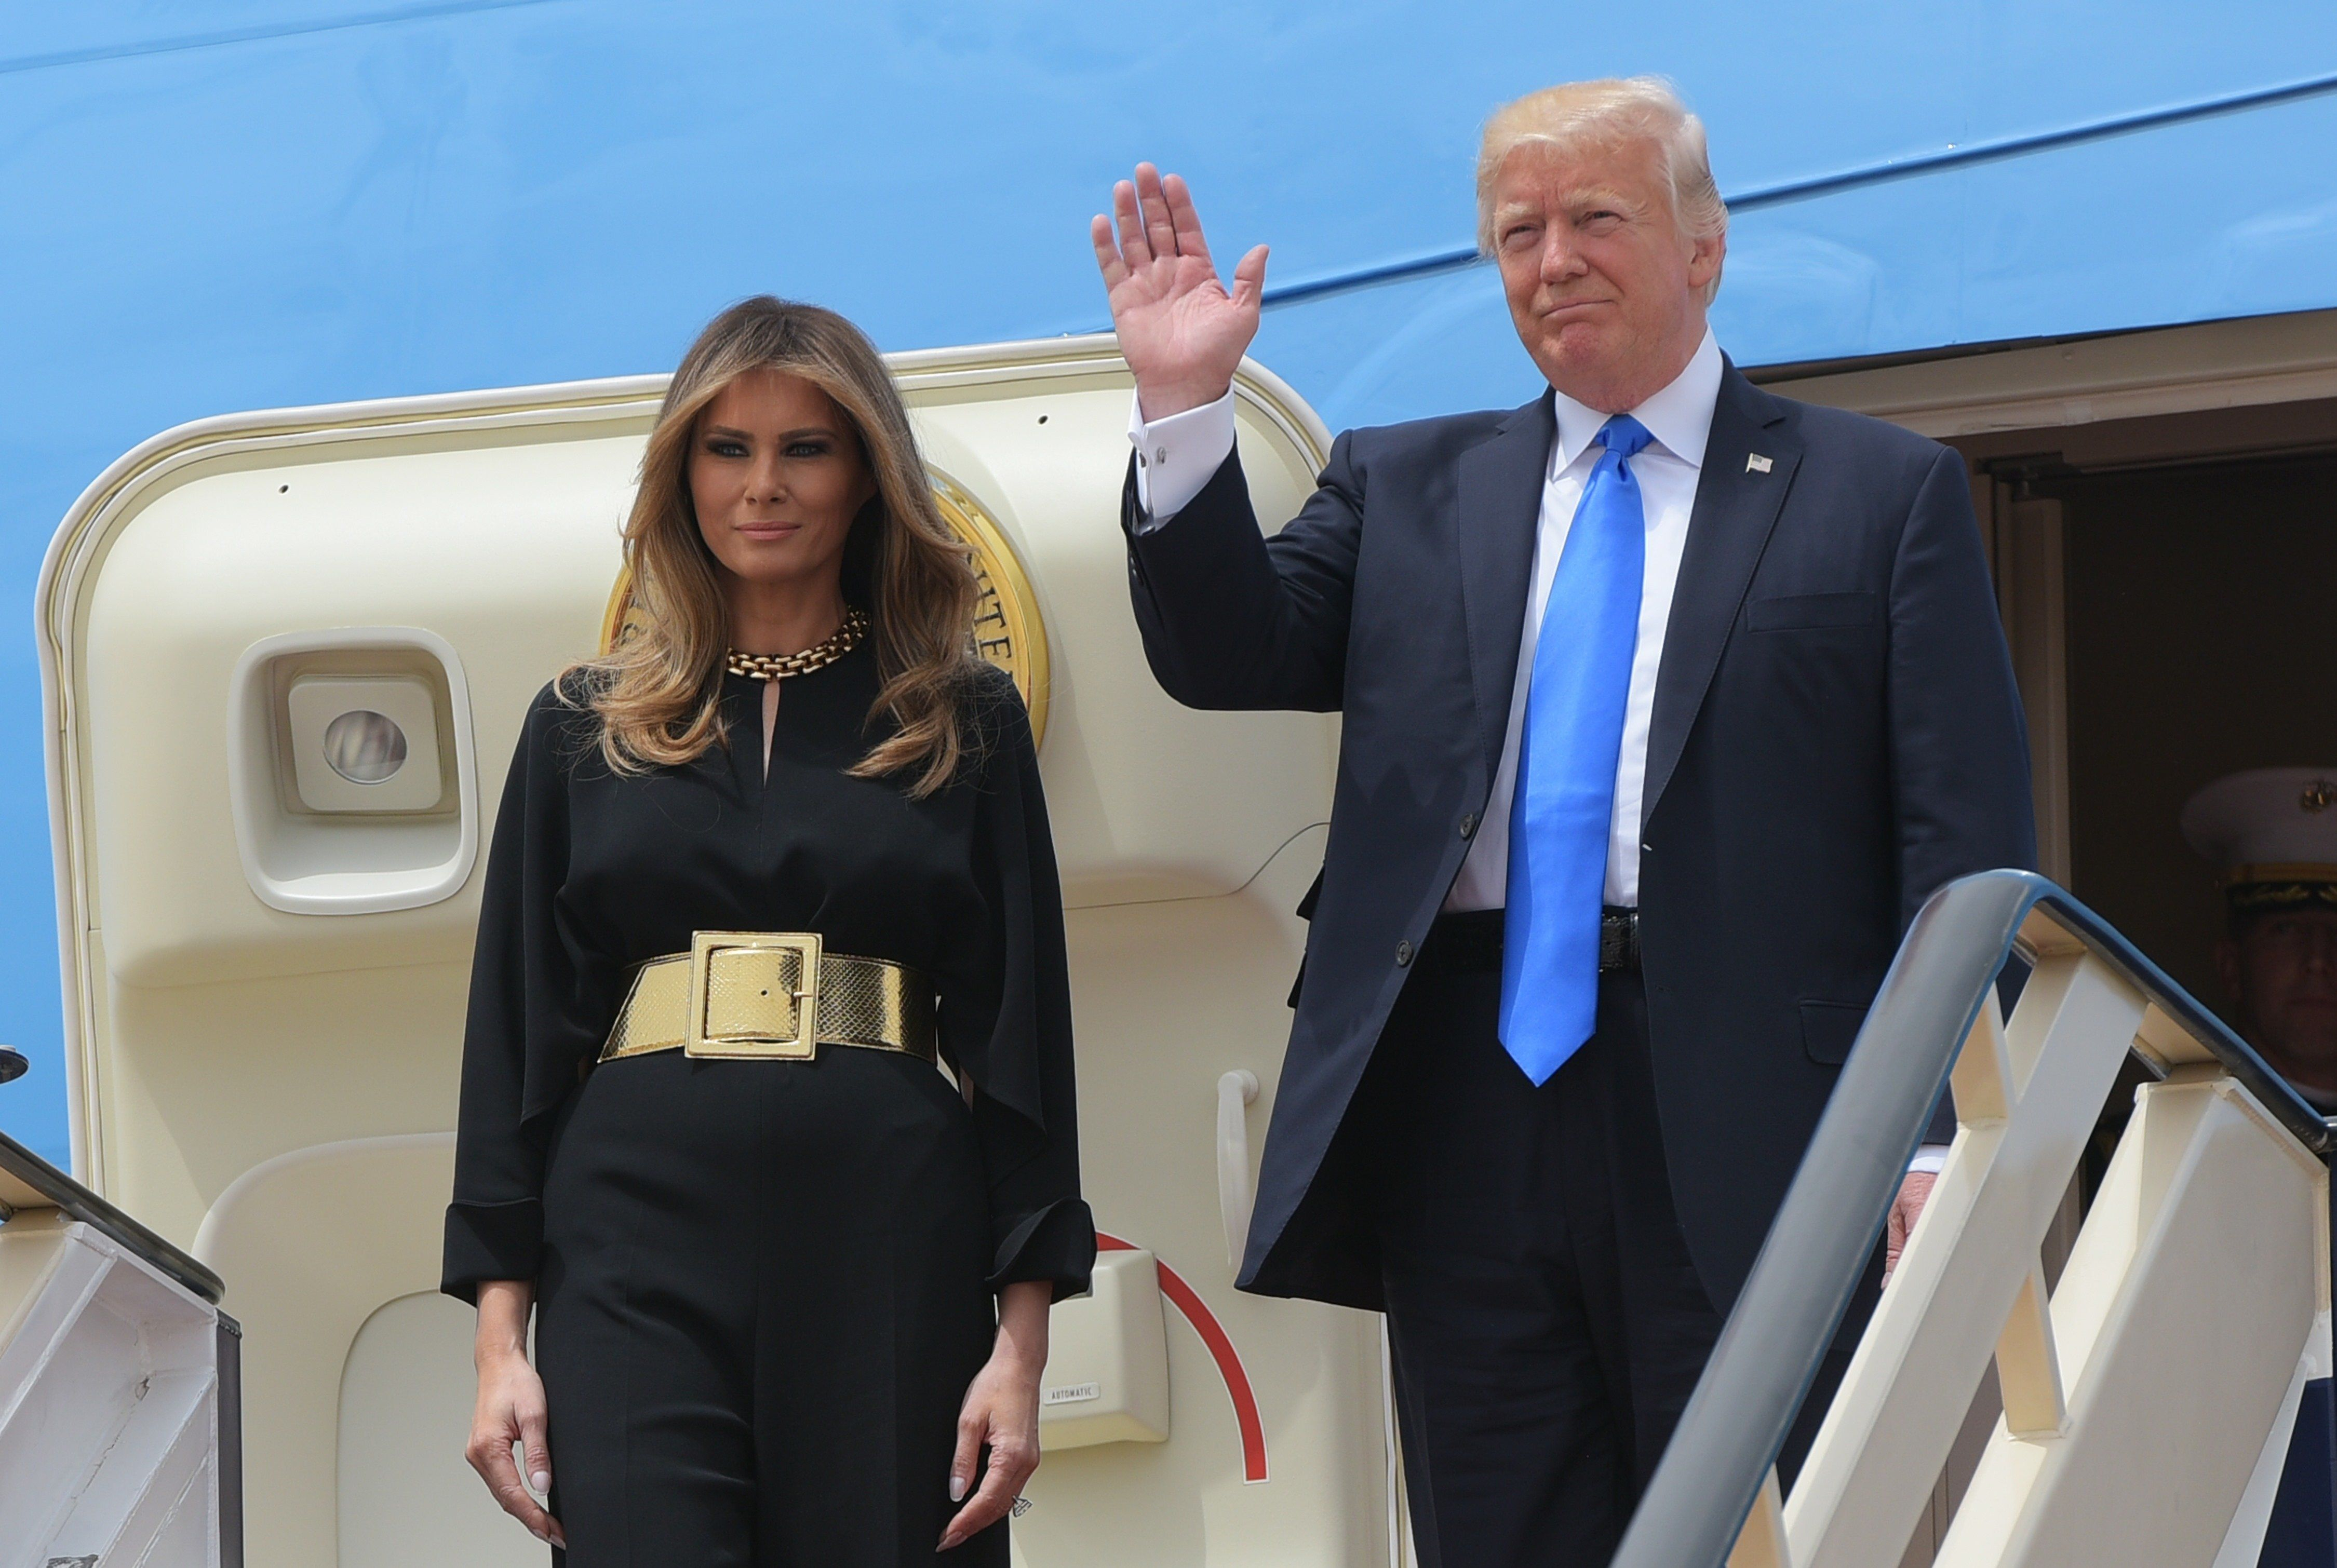 US President Donald Trump and First Lady Melania Trump step off Air Force One upon arrival at King Khalid International Airport in Riyadh on May 20, 2017. / AFP PHOTO / MANDEL NGAN        (Photo credit should read MANDEL NGAN/AFP/Getty Images)